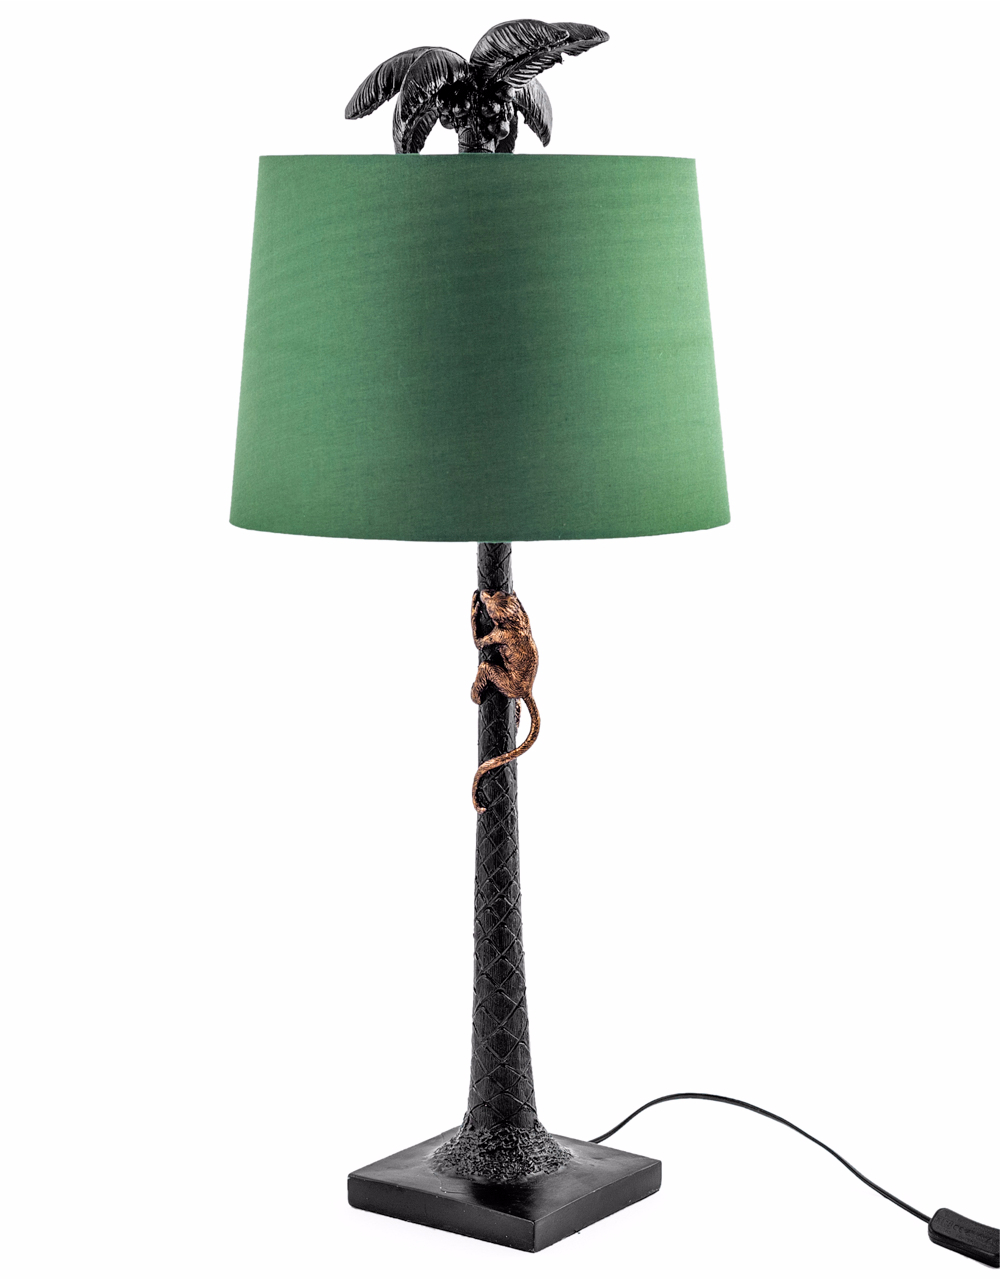 Black Palm Tree Lamp with Green Shade